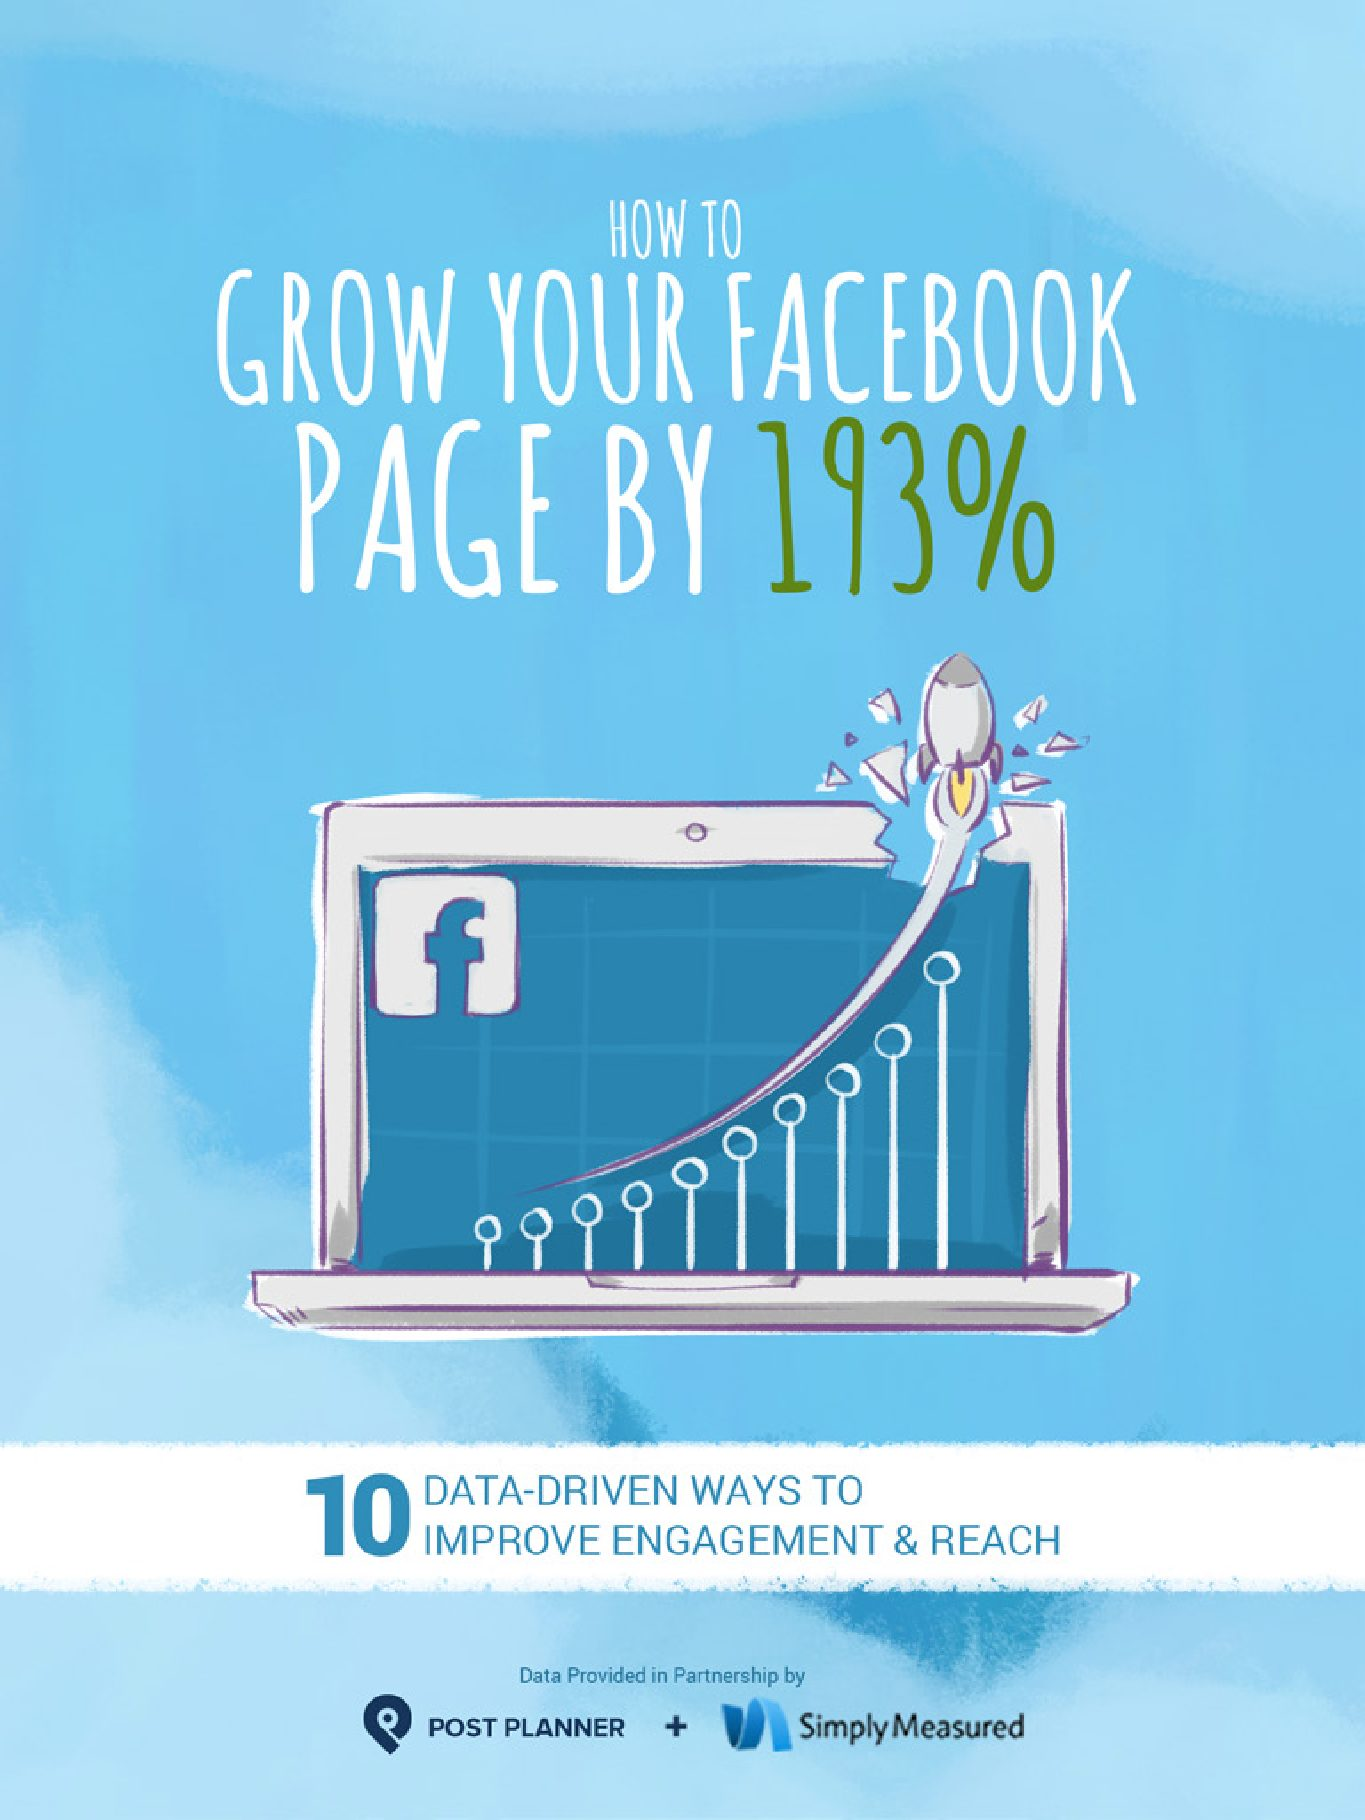 How to Grow Your Facebook Page by 193